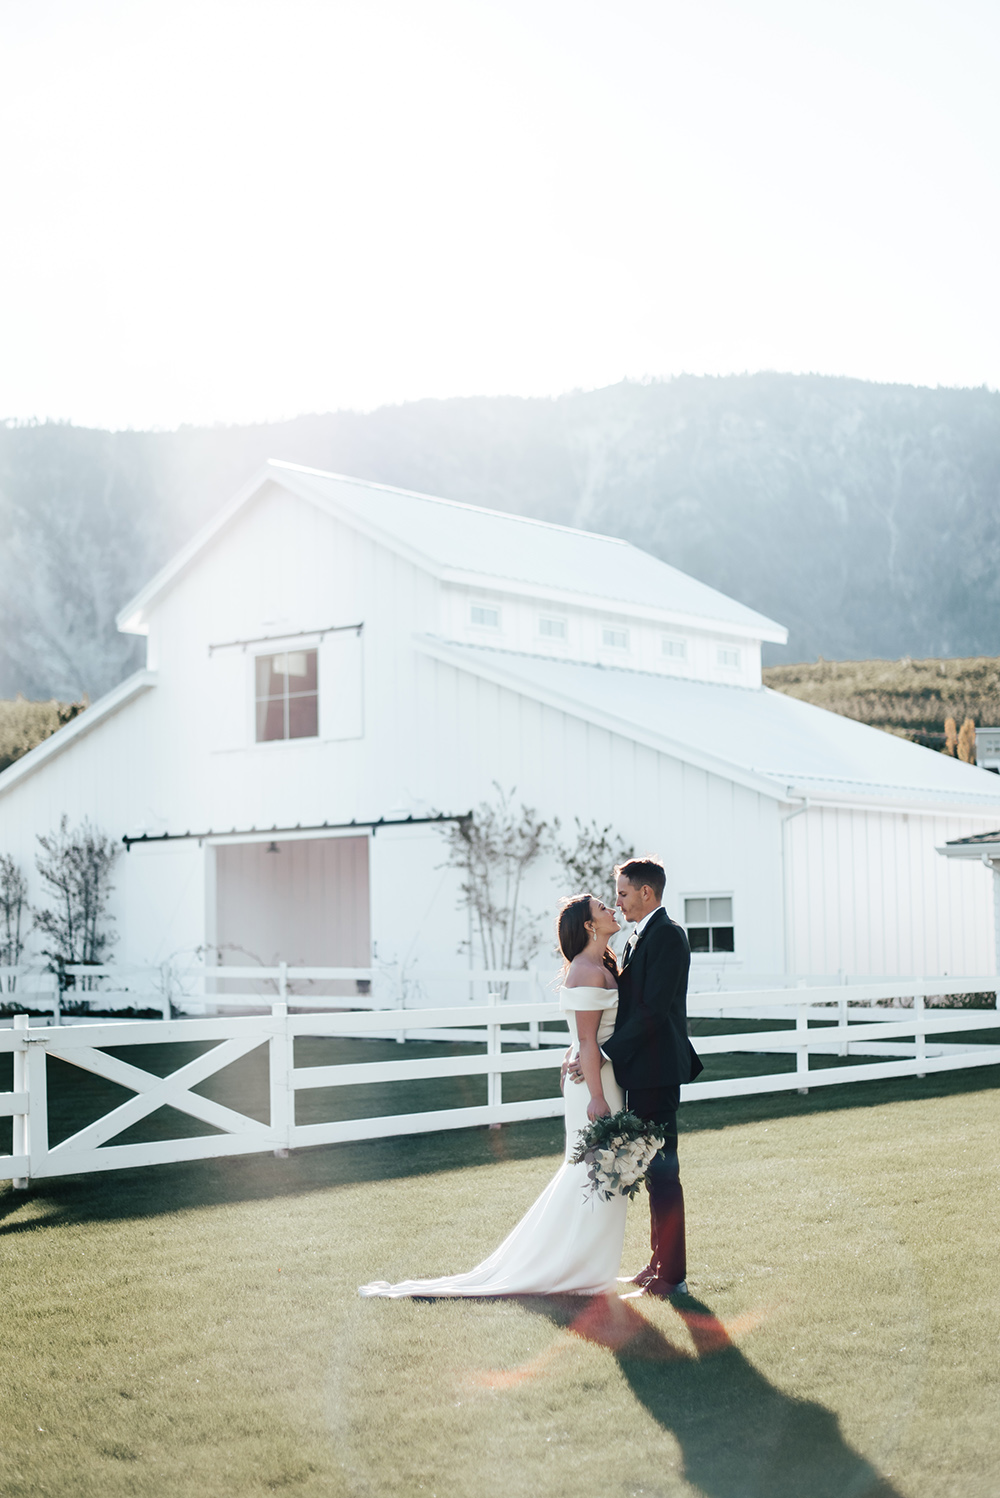 Classically Neutral Orchard Barn Wedding on Apple Brides